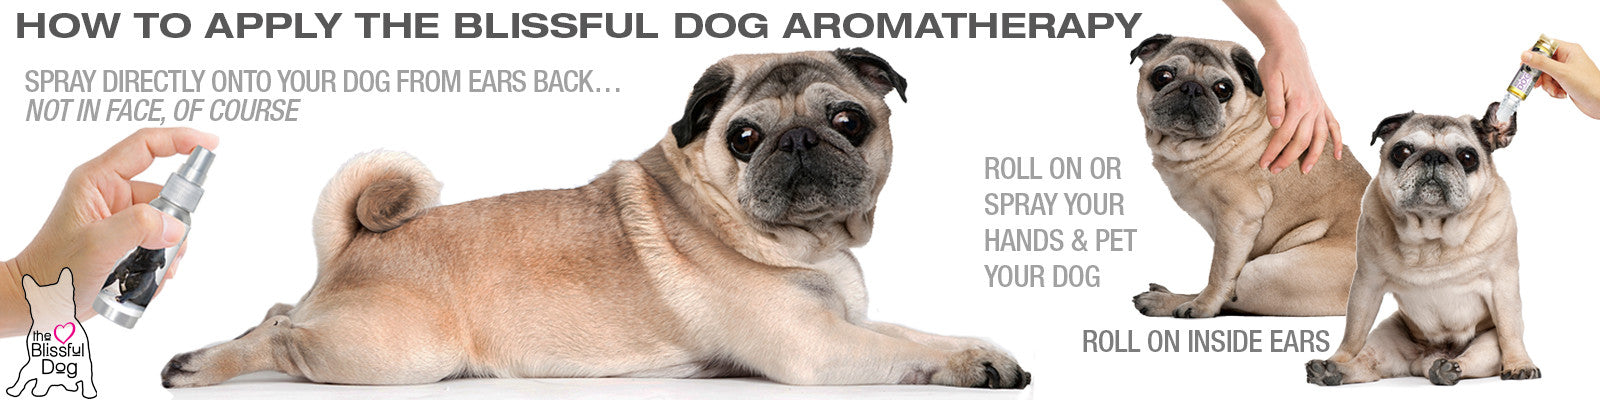 apply dog aromatherapy